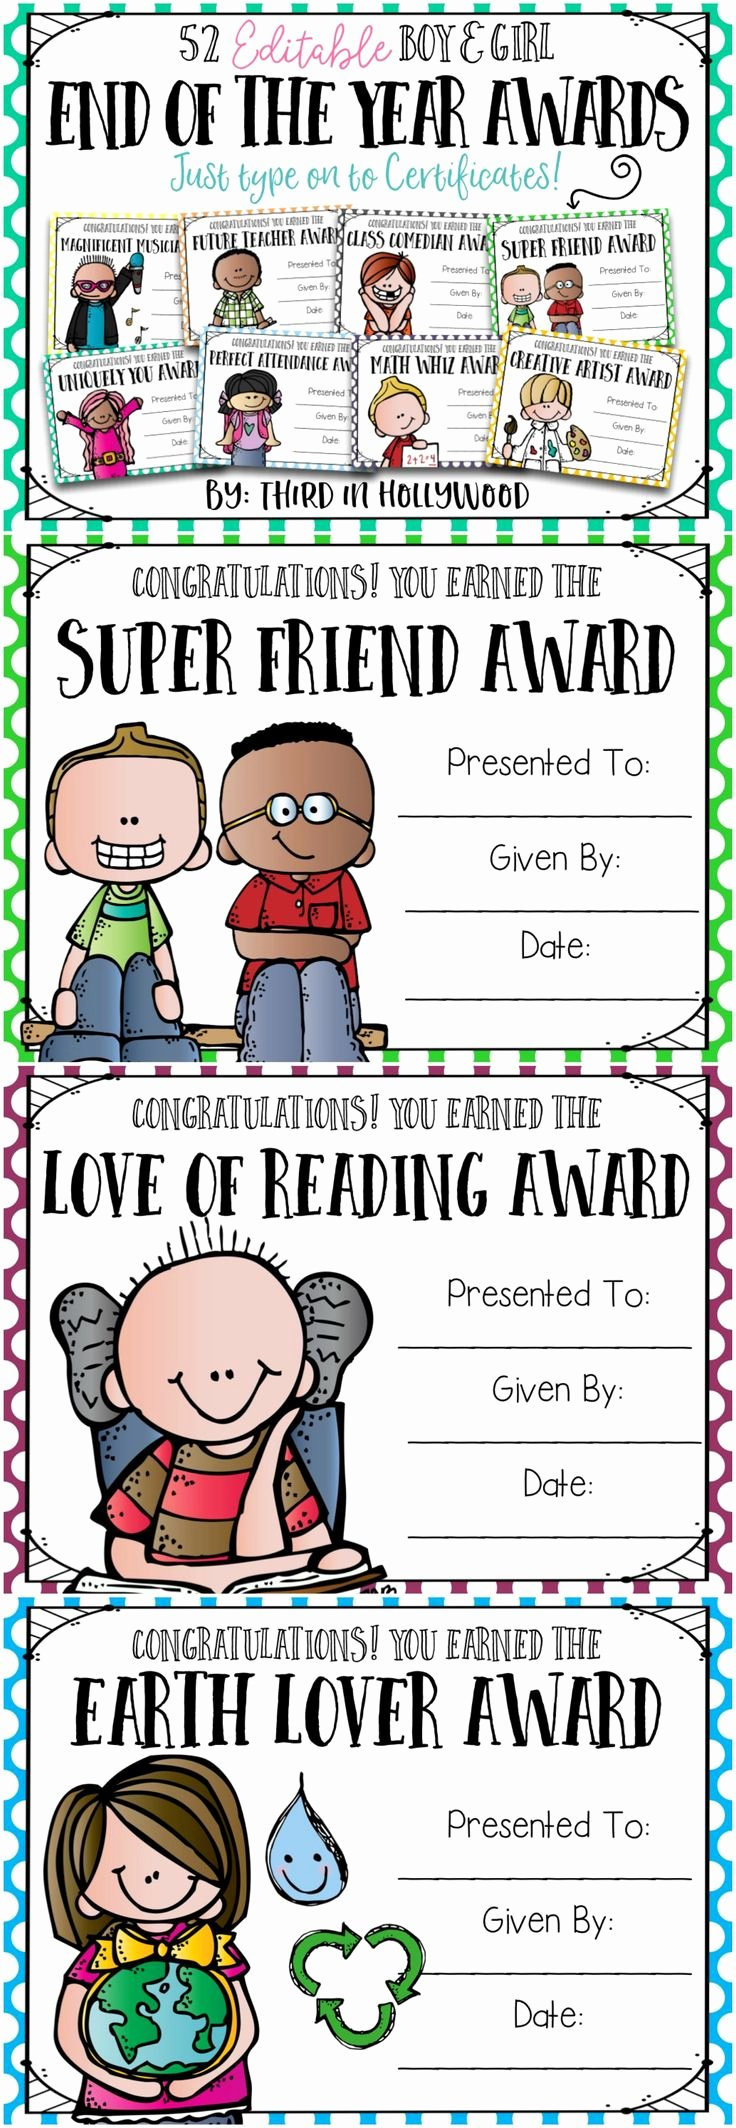 Preschool Graduation Awards Ideas Awesome End Of the Year Awards Editable